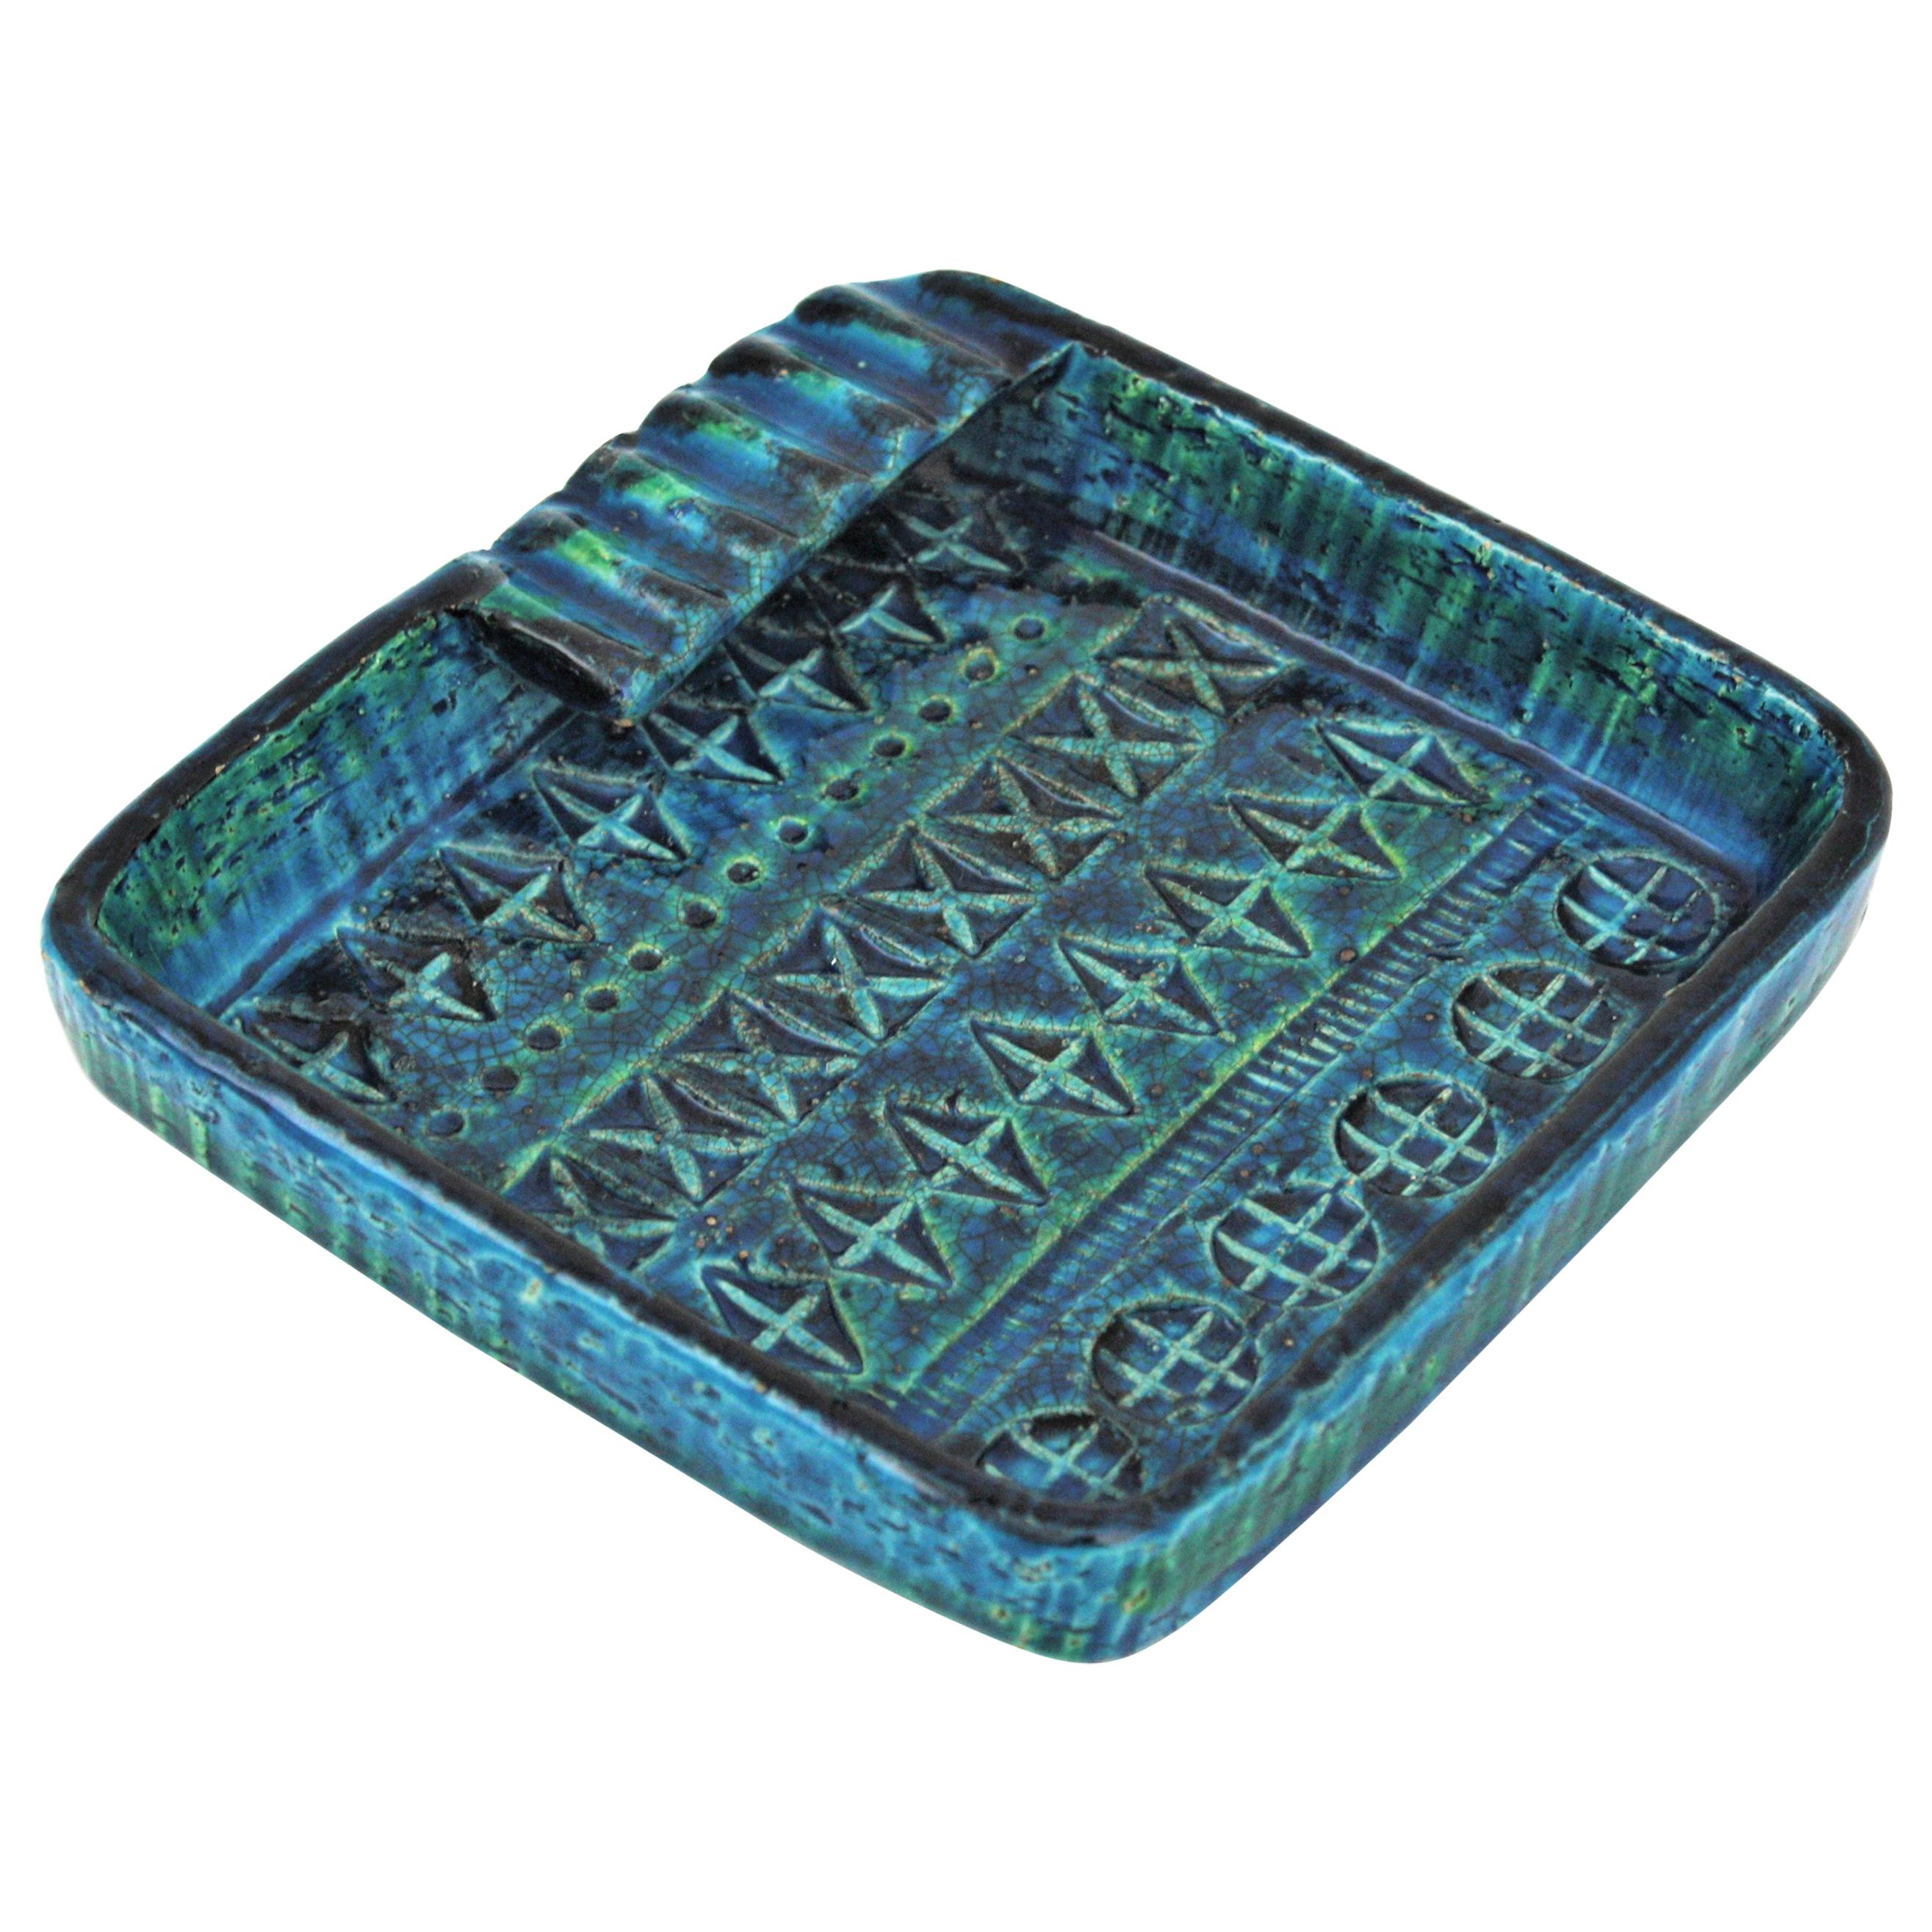 Aldo Londi Bitossi Rimini Blue Glazed Ceramic Square Ashtray, Italy, 1960s